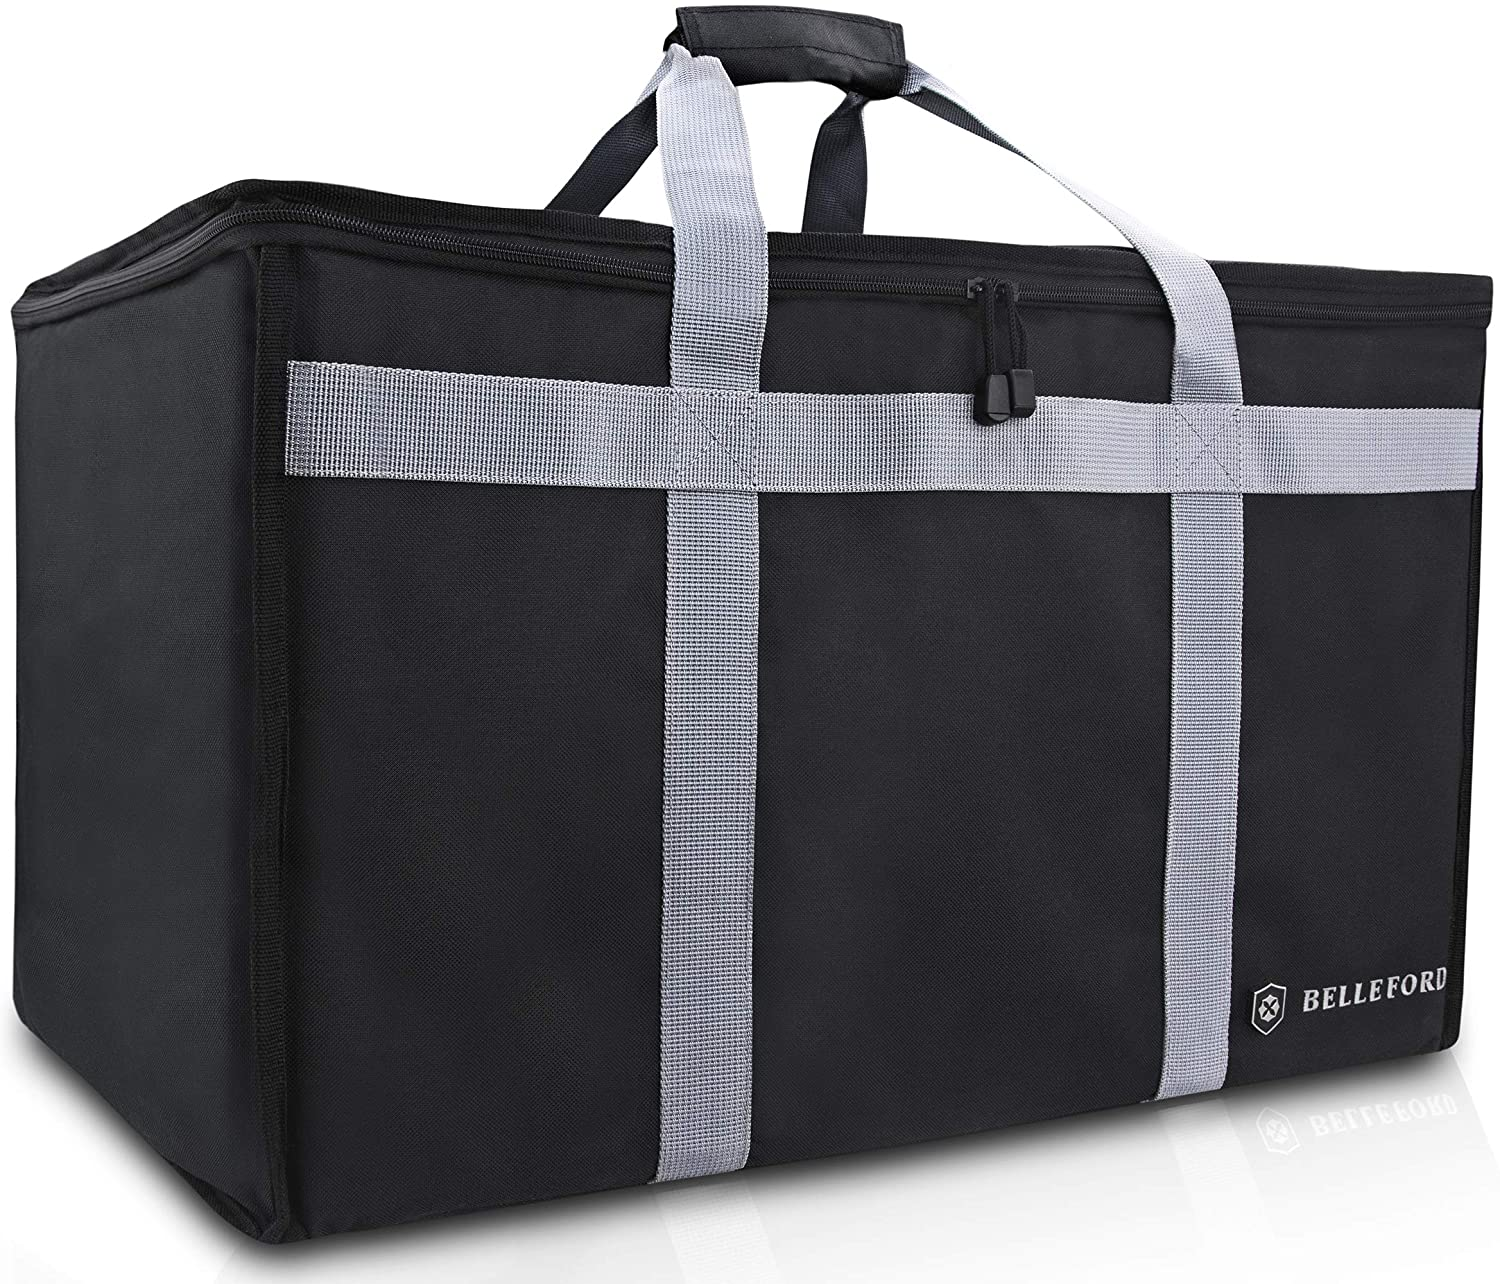 Belleford Insulated Food Delivery Bag - XXL Waterproof Warmer Cooler Grocery Storage